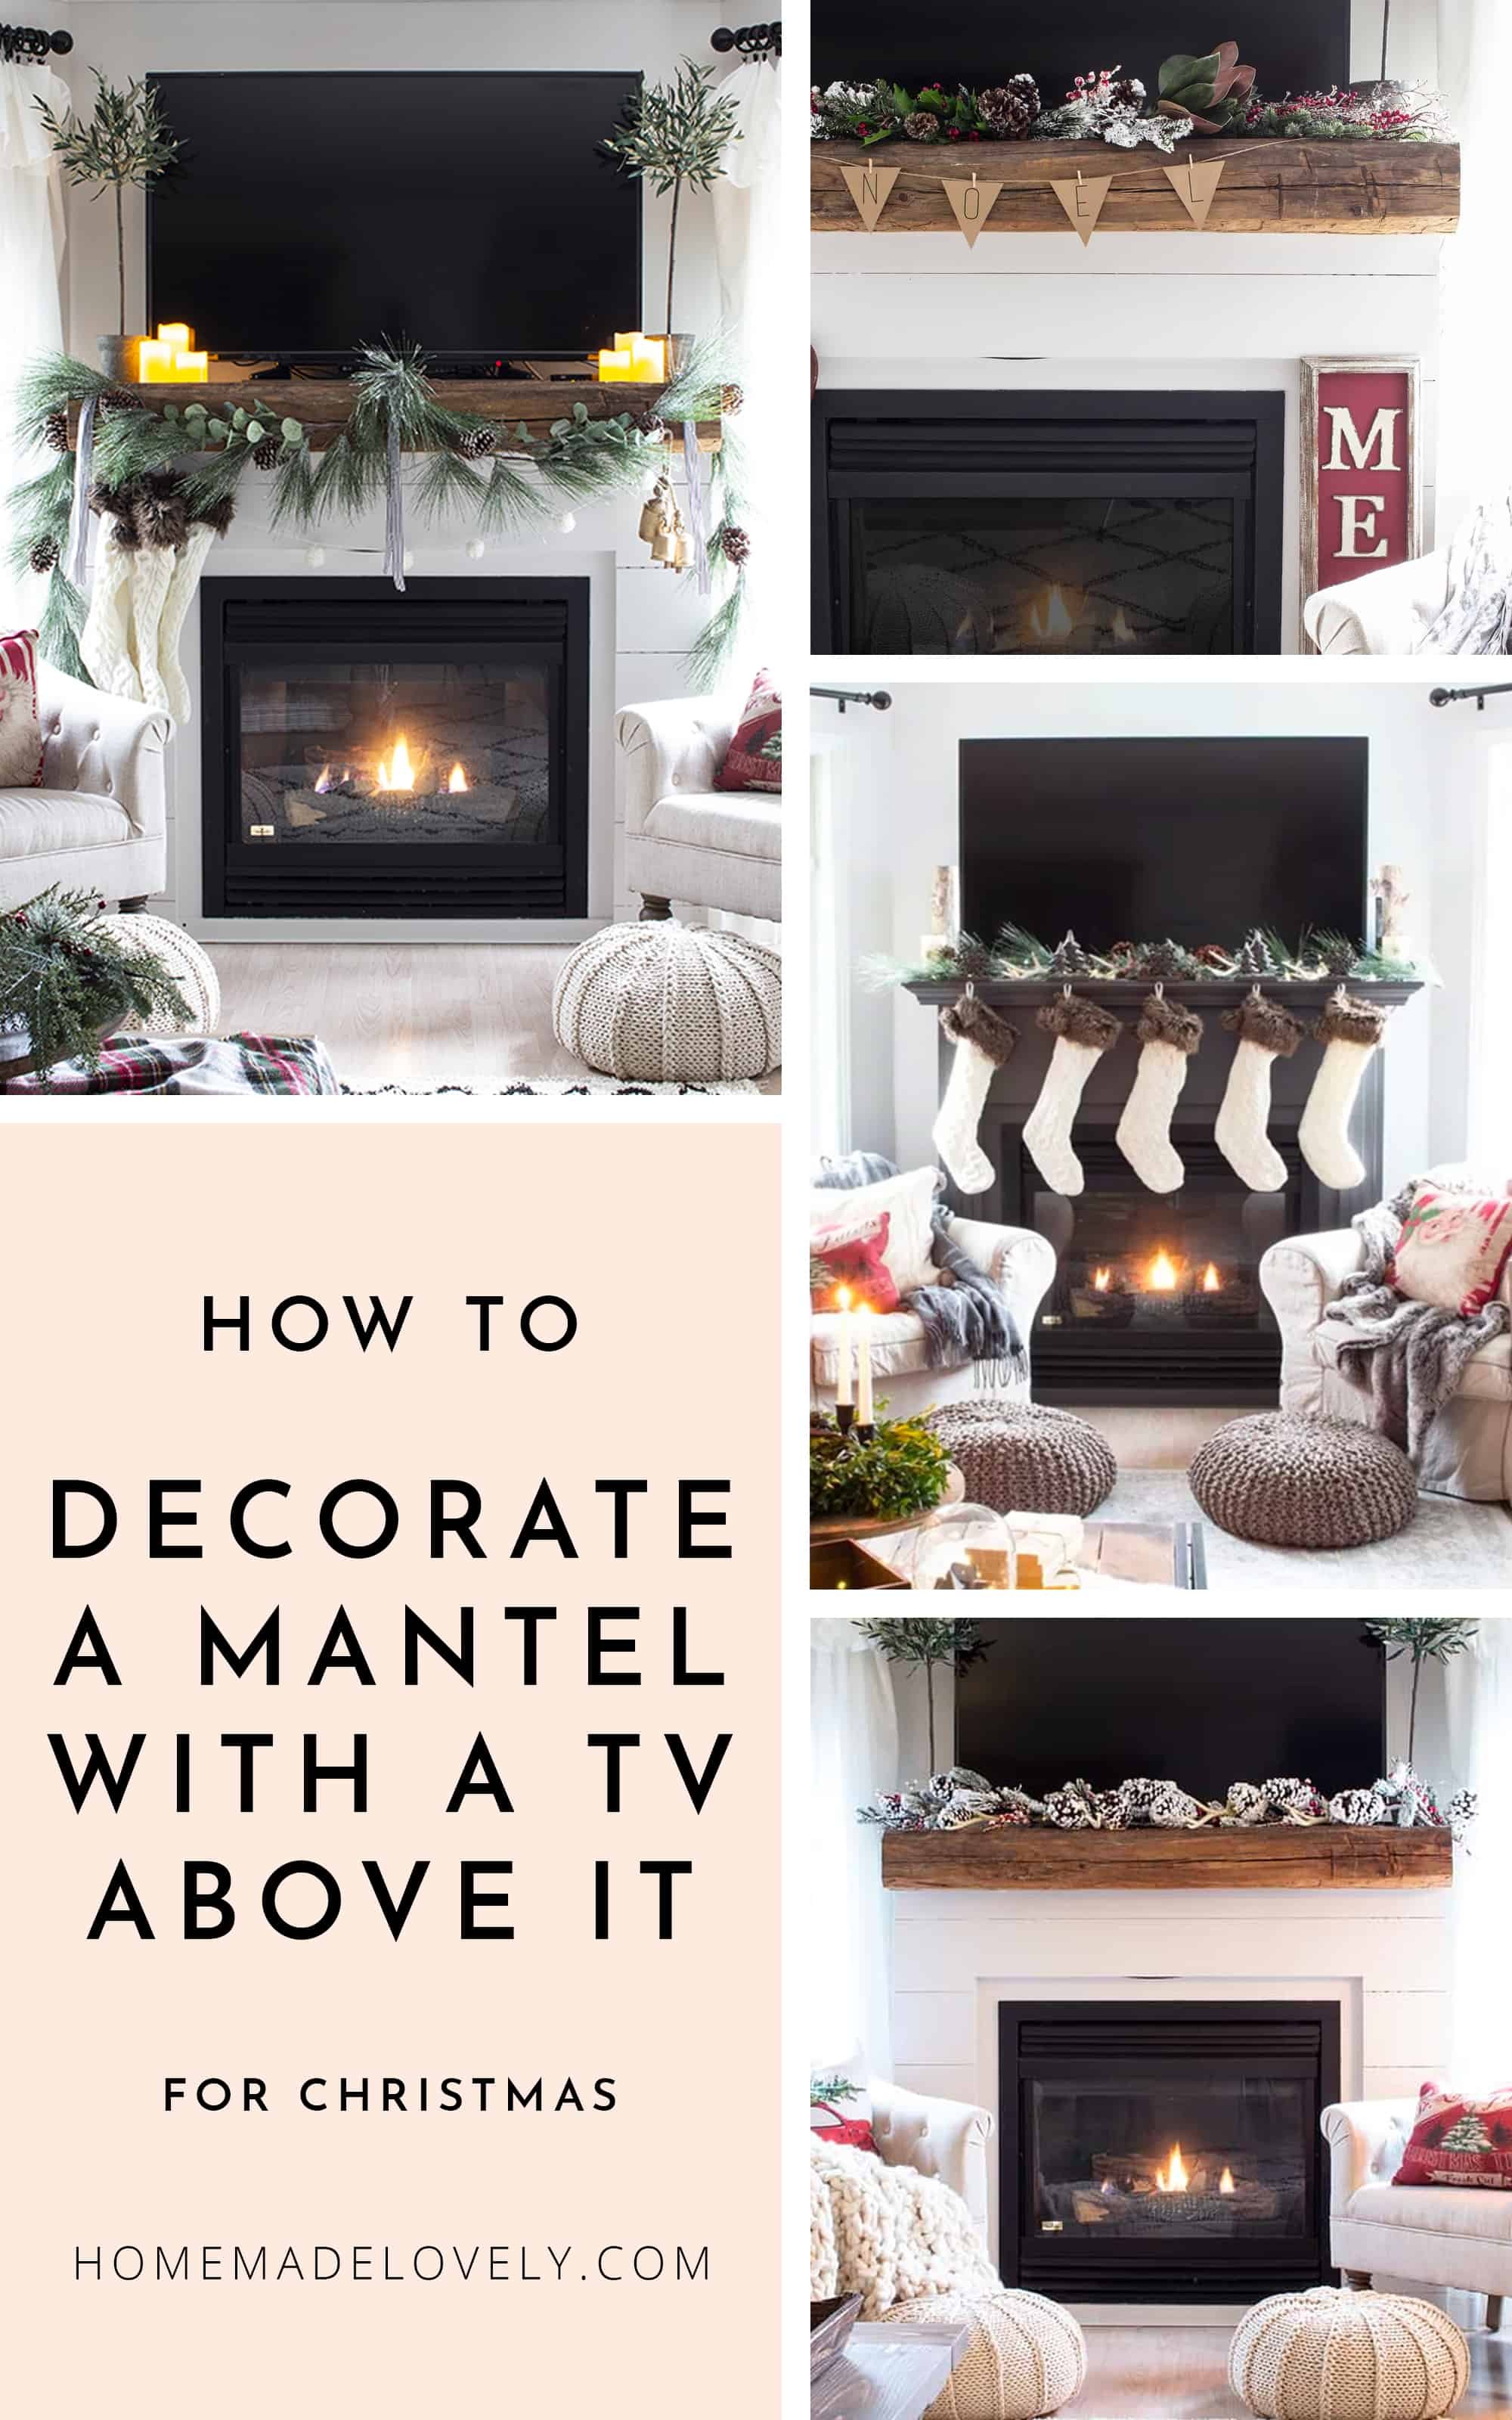 How to Decorate a Mantel for Christmas with a TV above it